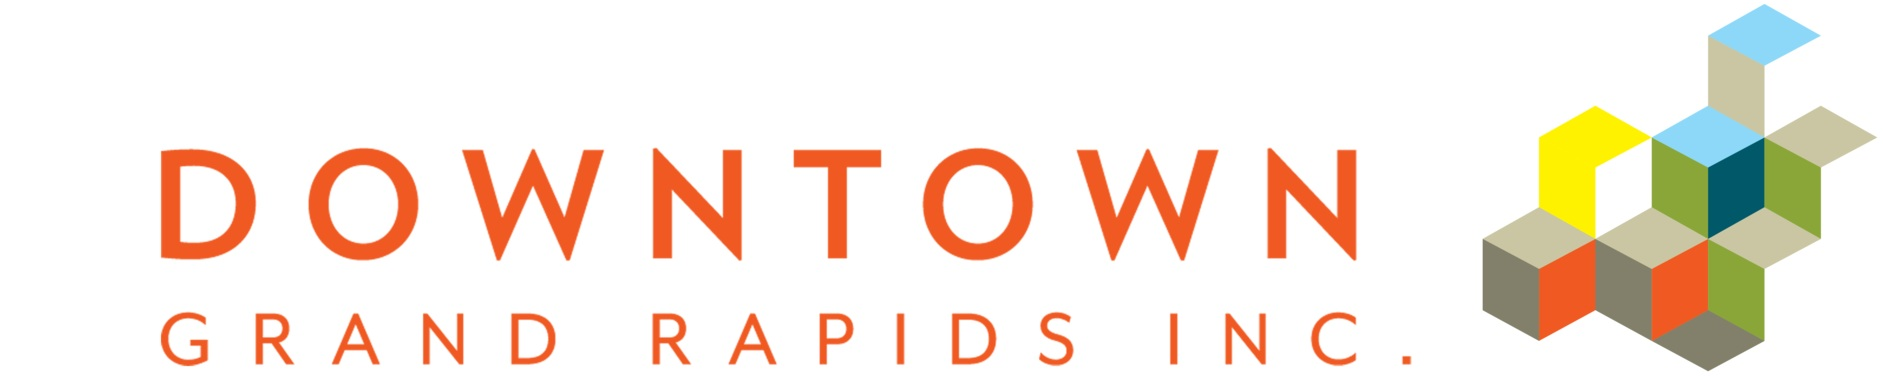 Downtown+Grand+Rapids+Inc+logo-Final.jpg